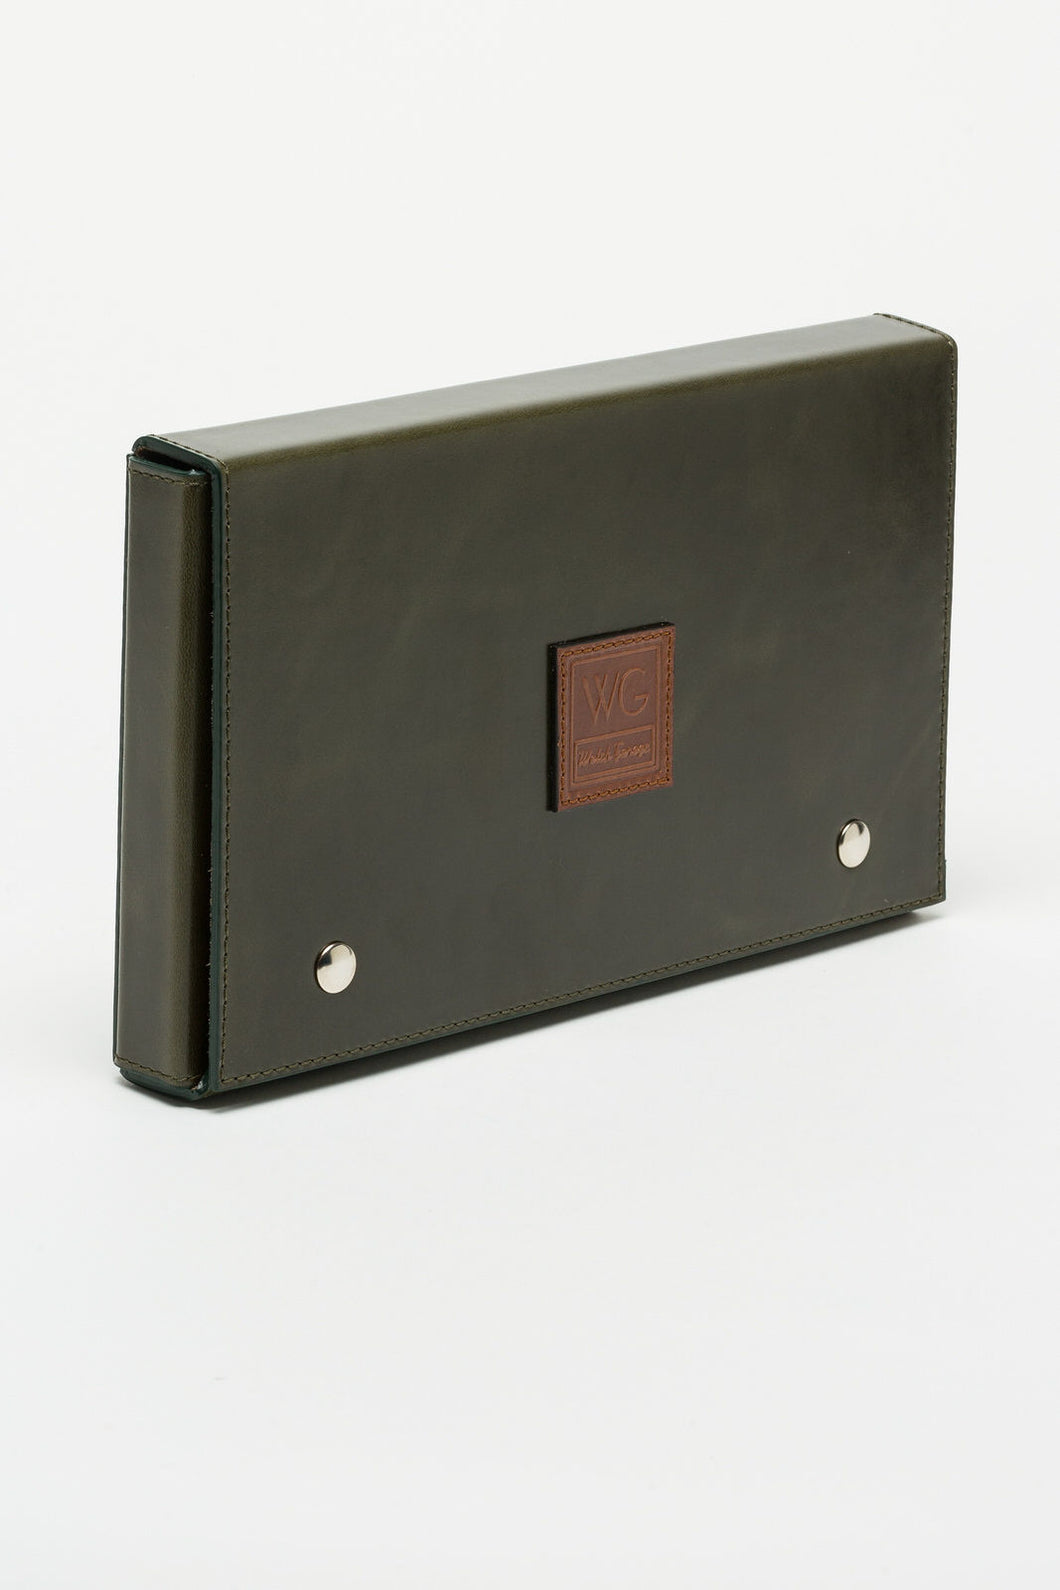 WG Xclusiv Royal Green Leather Case